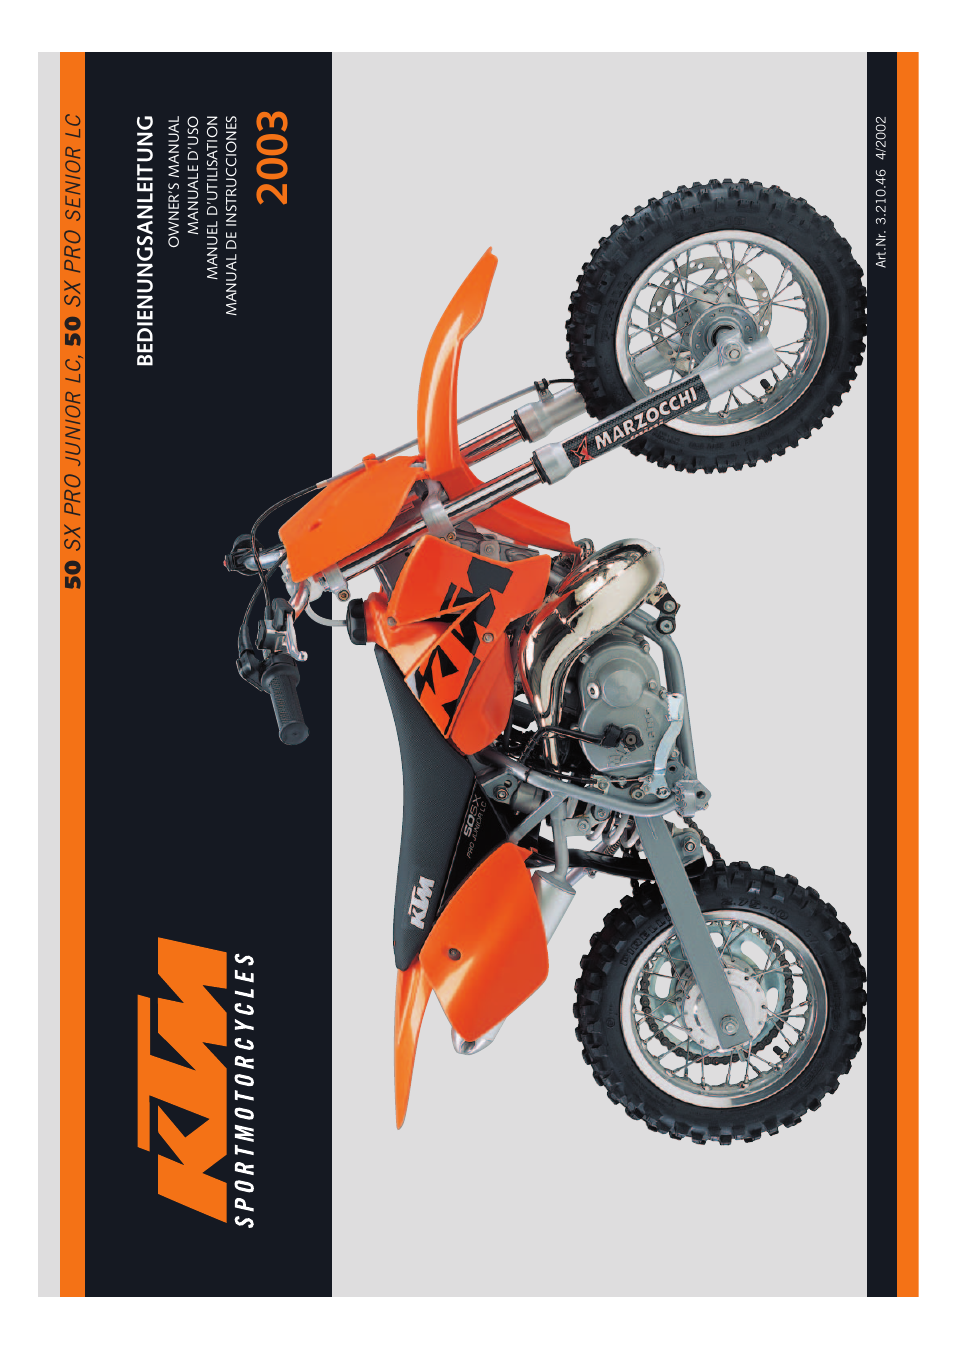 KTM 50 SX PRO SENIOR LC User Manual | 35 pages | Also for: 50 SX PRO JUNIOR  LC